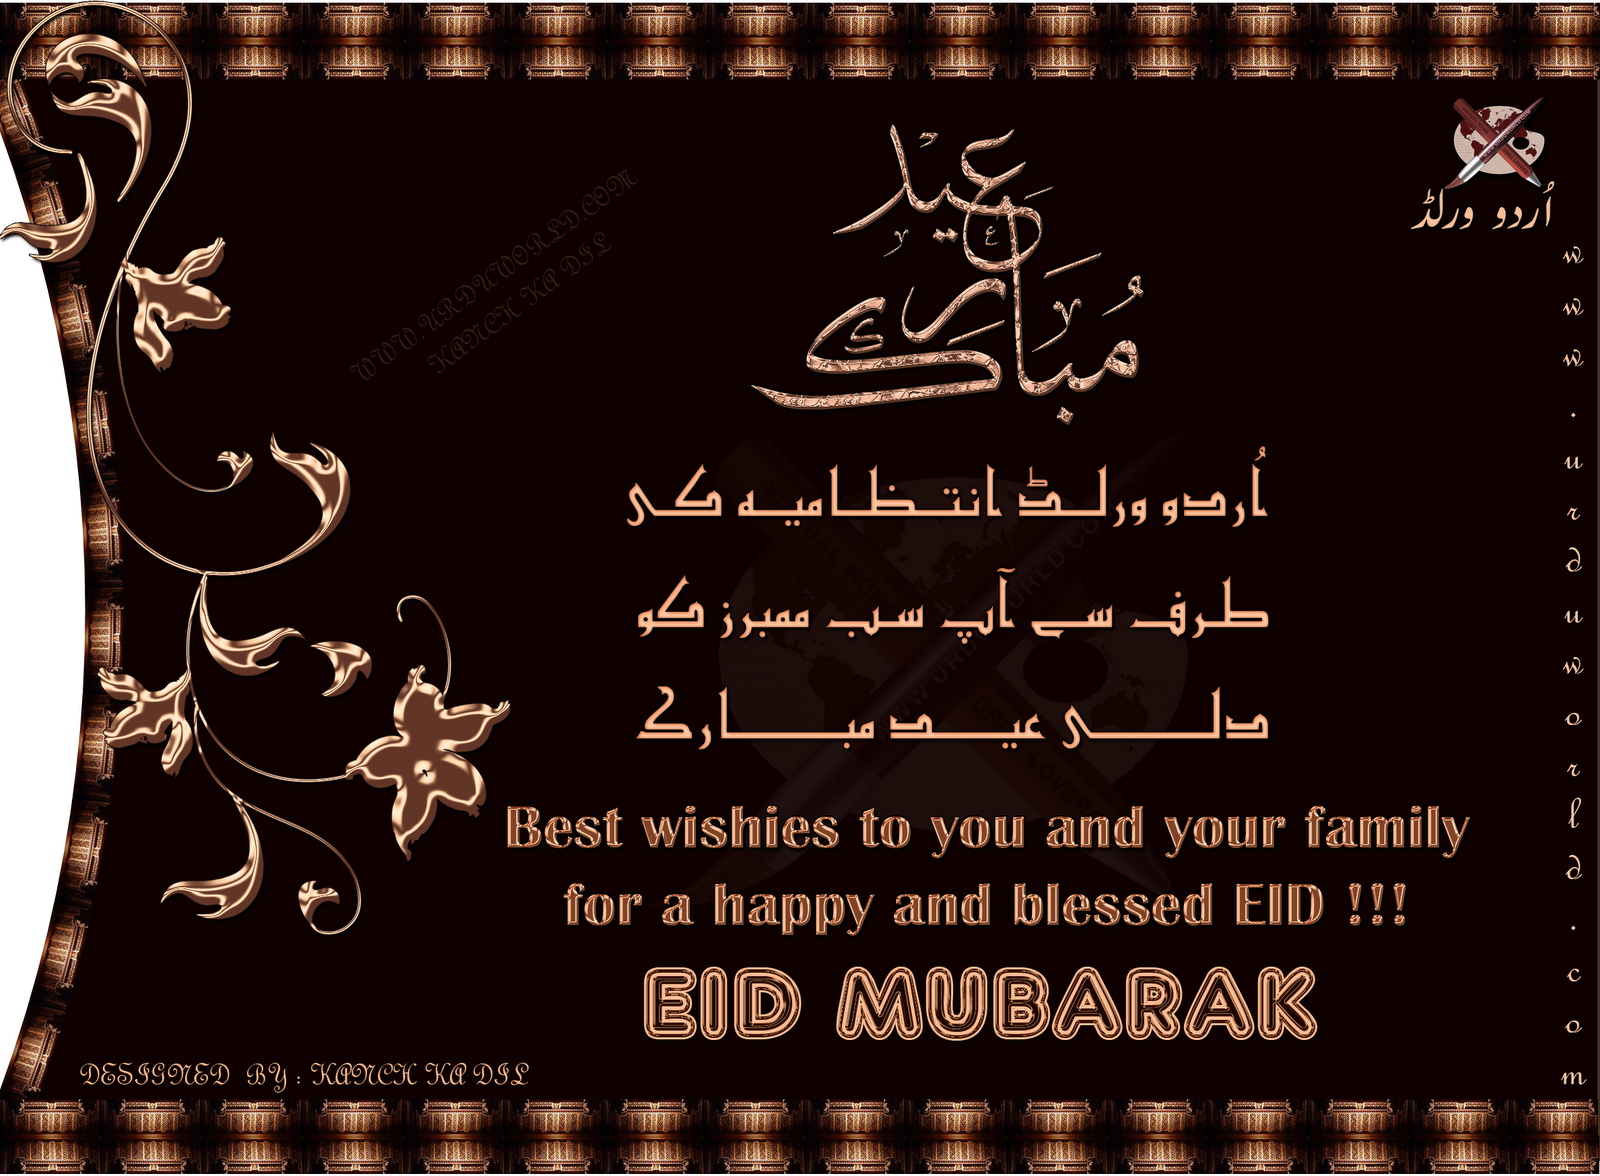 Hd widescreen backgrounds wallpapers eid mubarak greetings eid mubarak greetings cards picture kristyandbryce Image collections